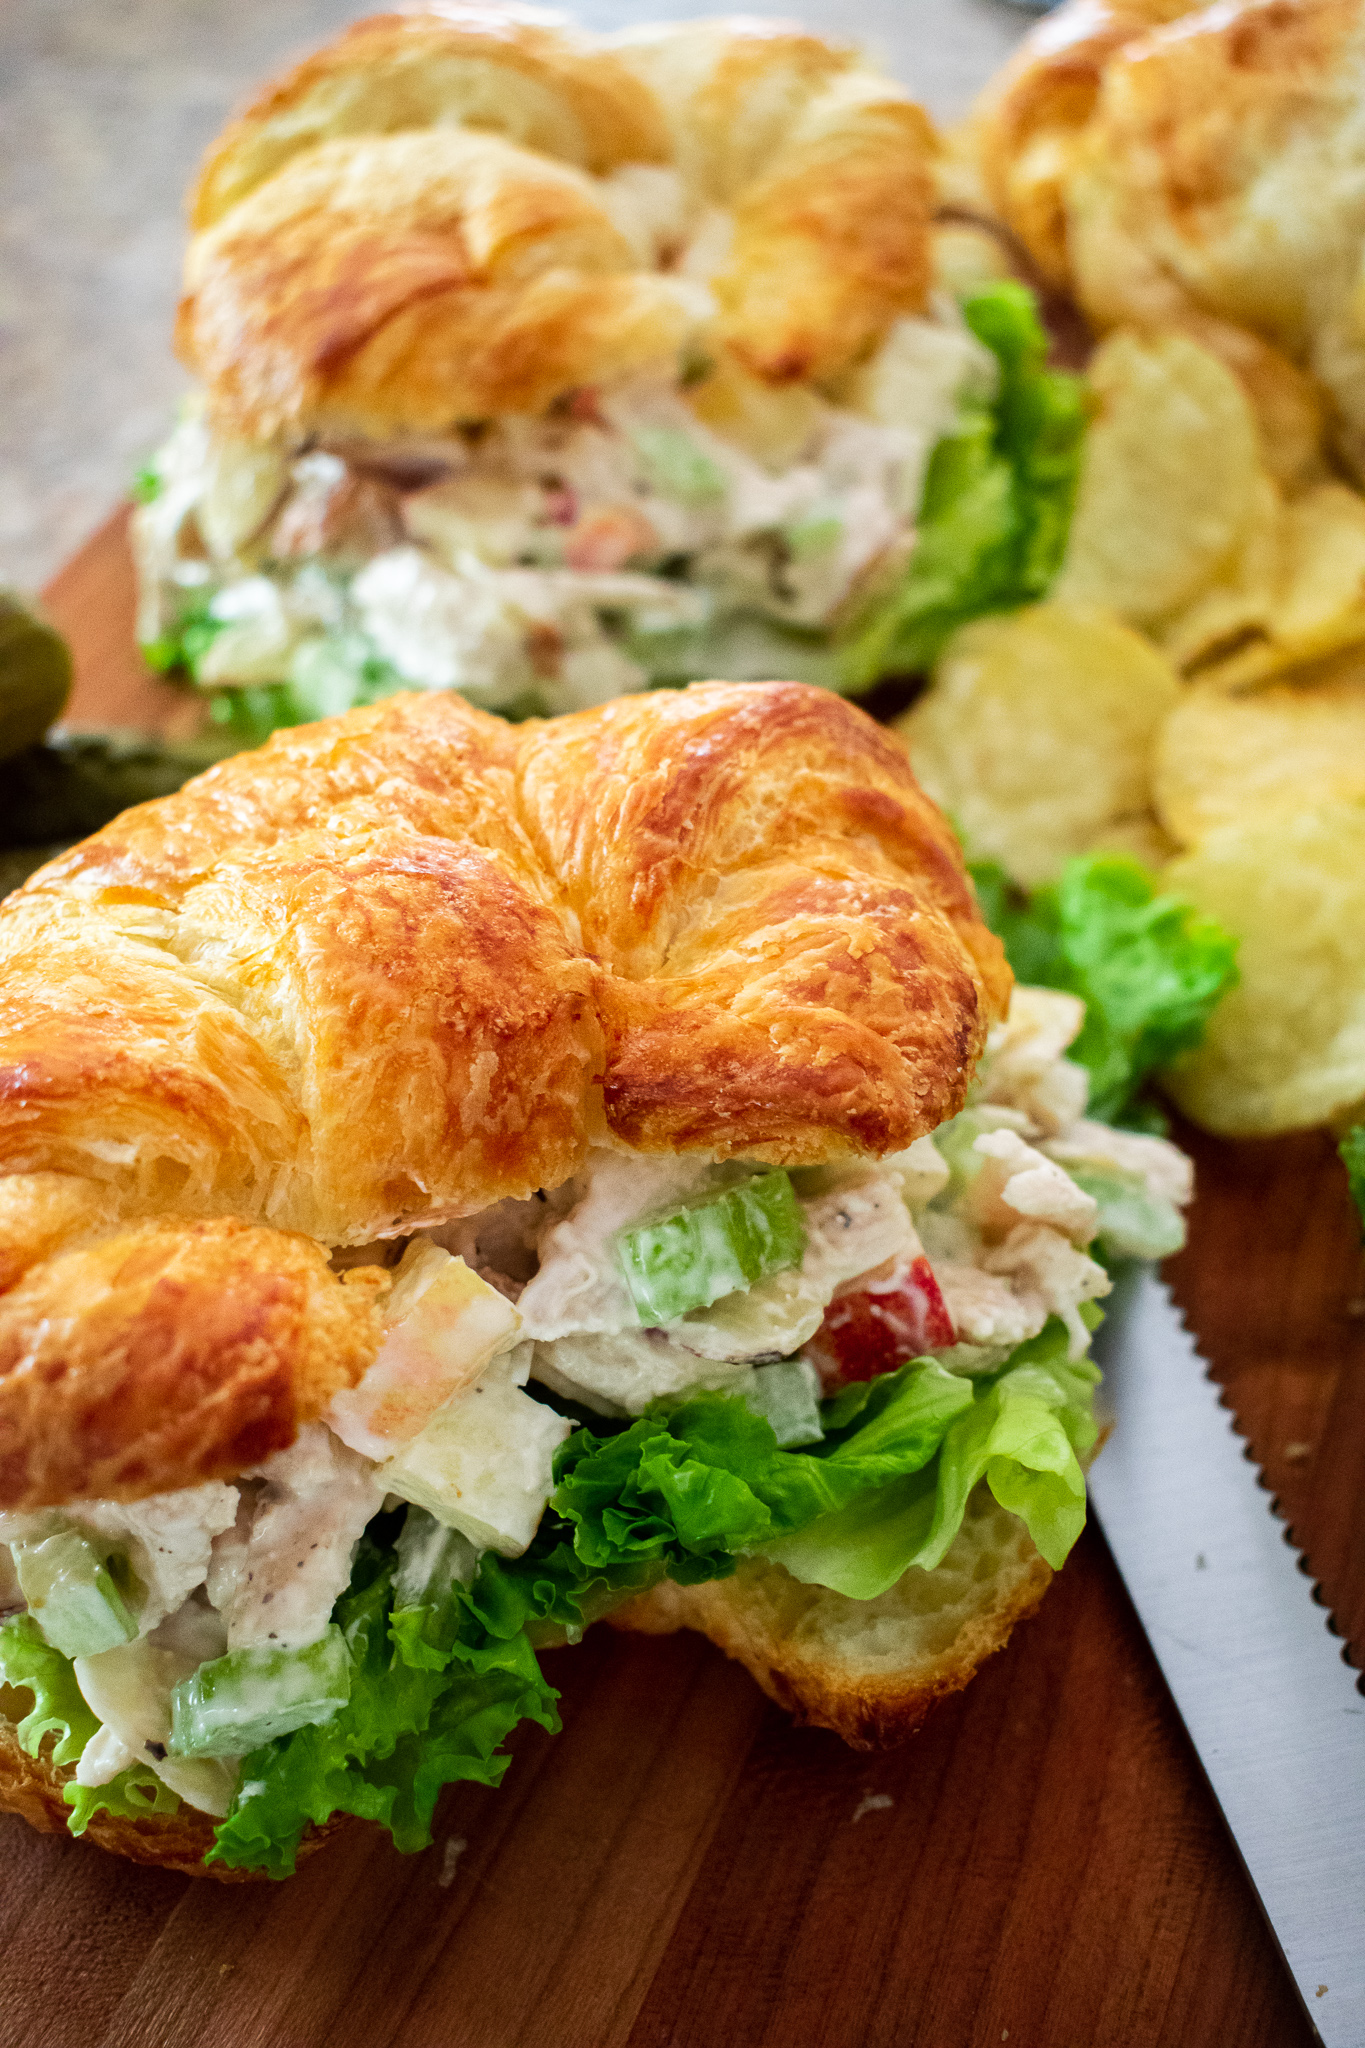 Chicken salad piled high on a flaky croissant surrounded by potato chips and dill pickles